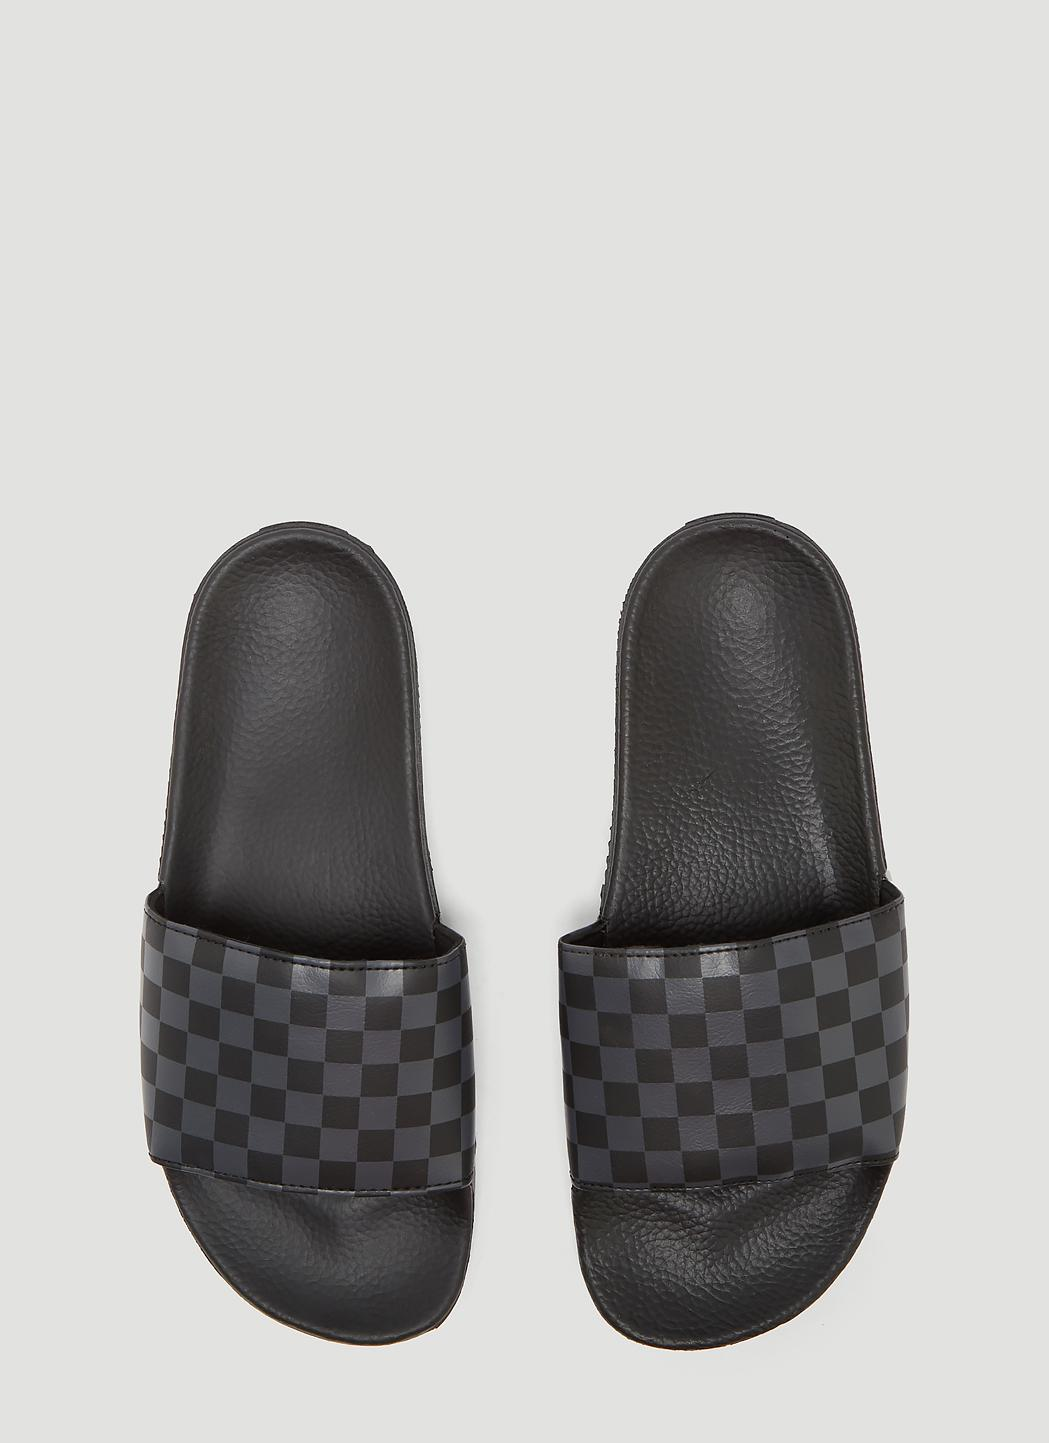 bc1cd9536b9 Lyst - Vans Checker Slides In Black in Black for Men - Save 47%